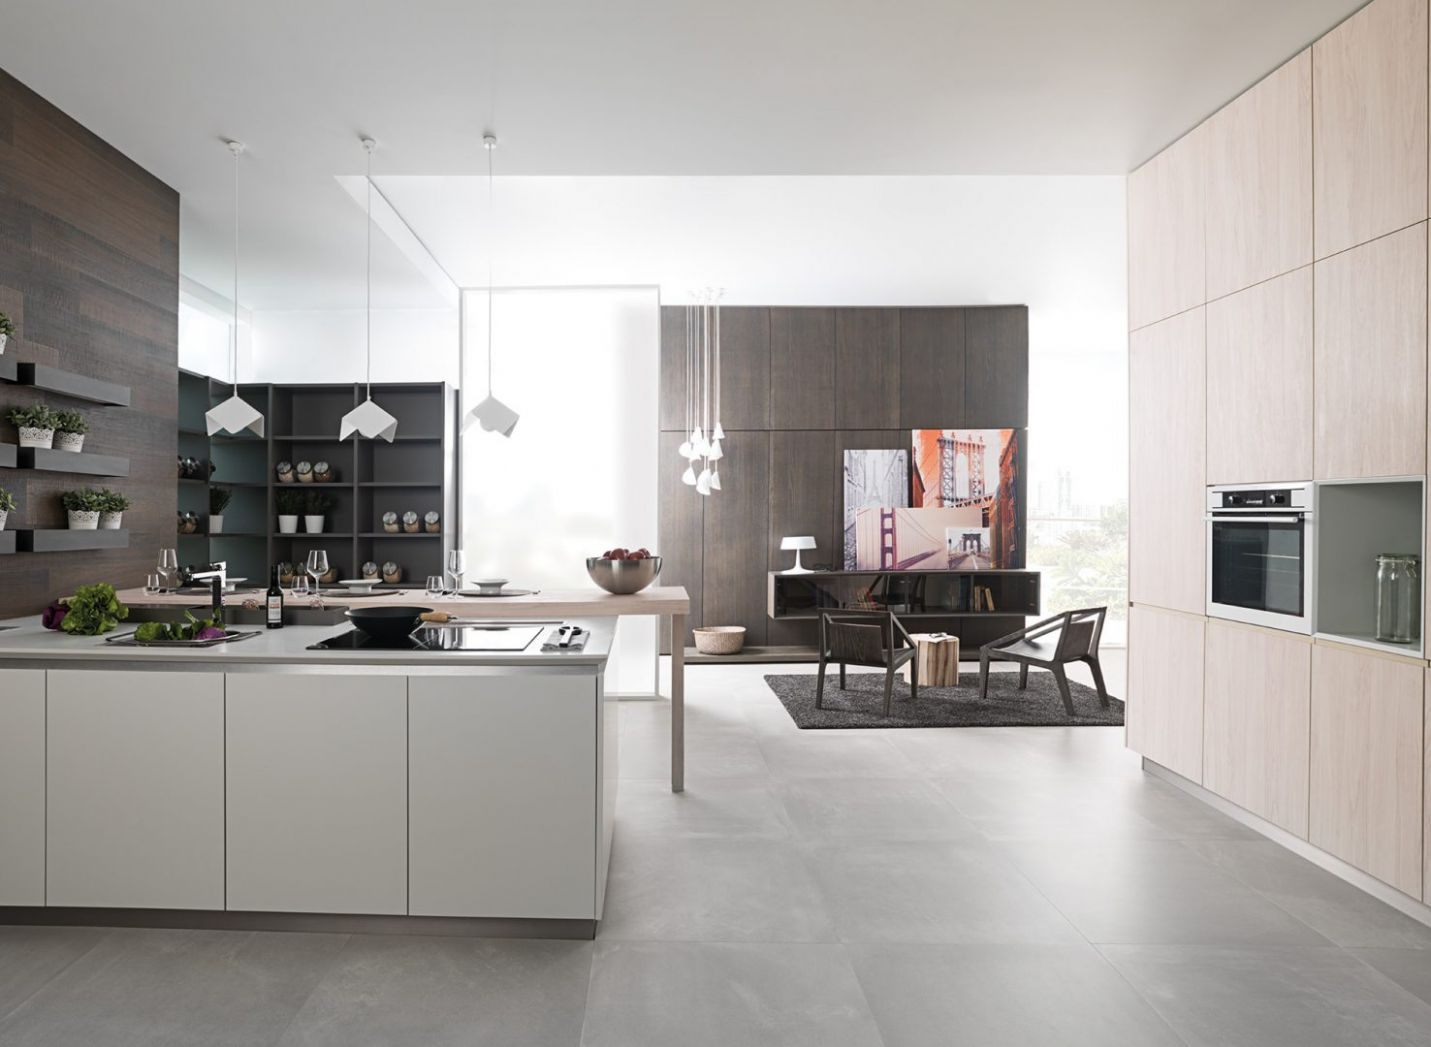 Open plan kitchen ideas for making the most of the space available ...